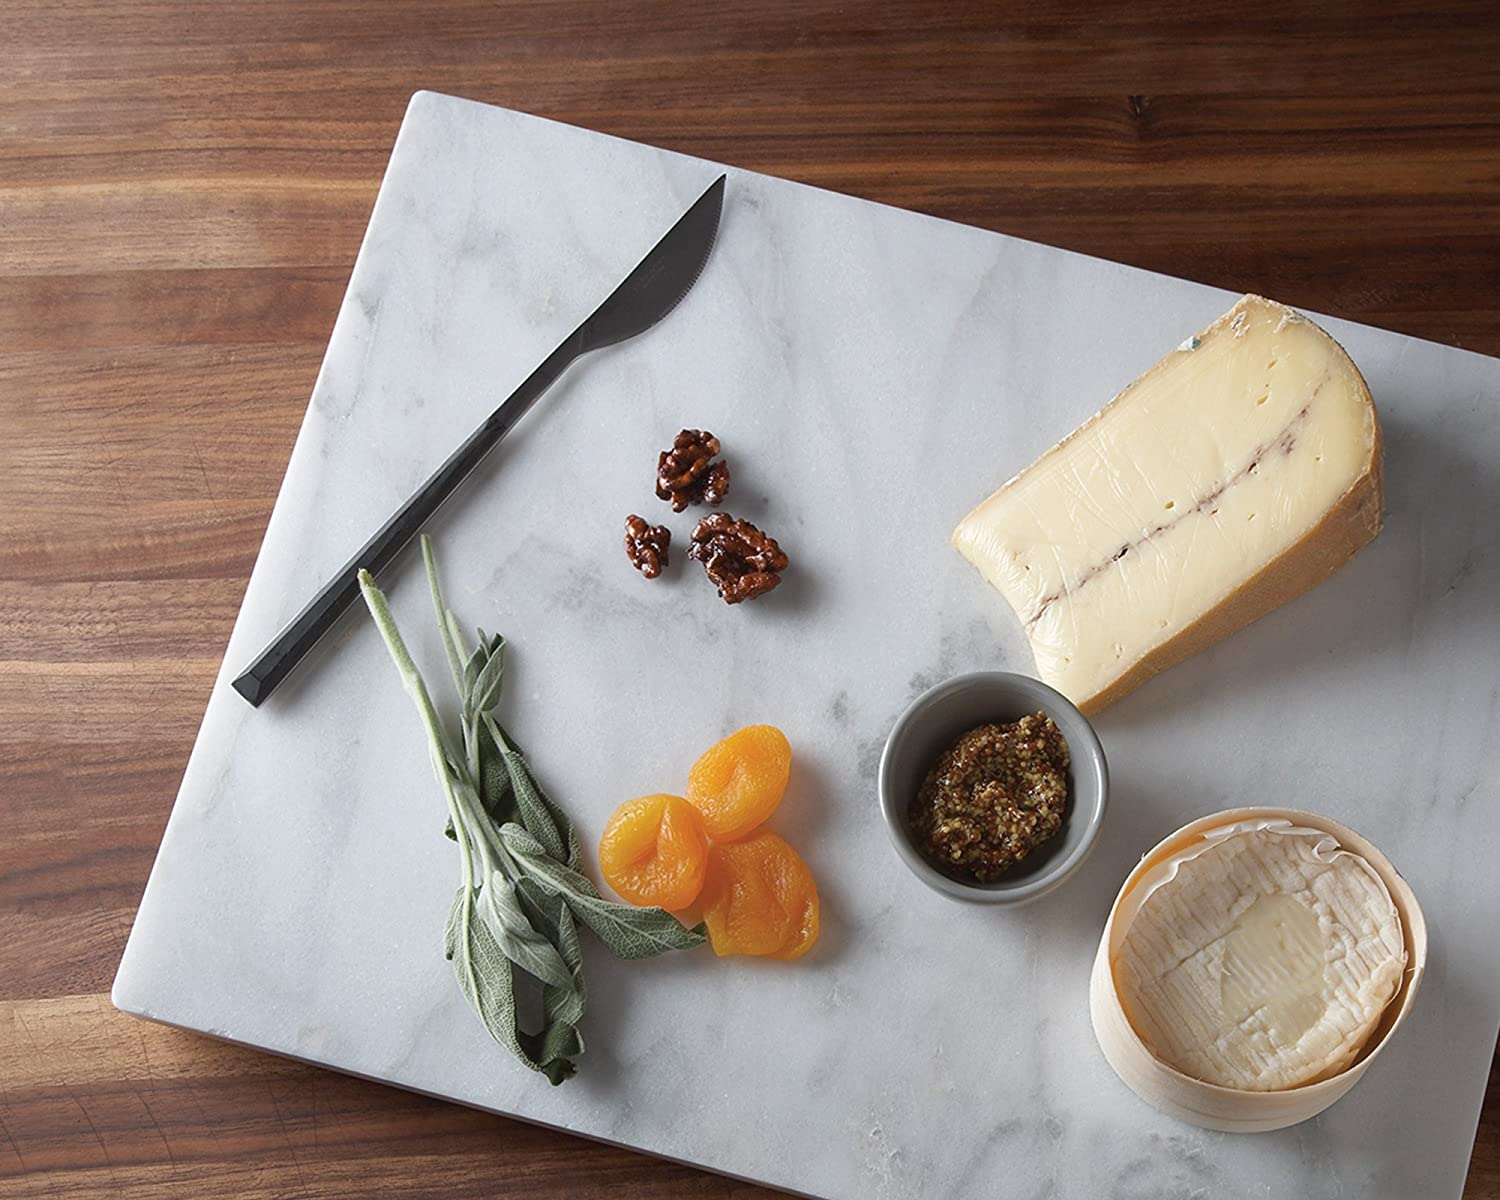 Marble pastry board or platter for cheese boards and charcuterie. Thanksgiving Dinner Menu Ideas & Winning Recipes to Plan and PIN